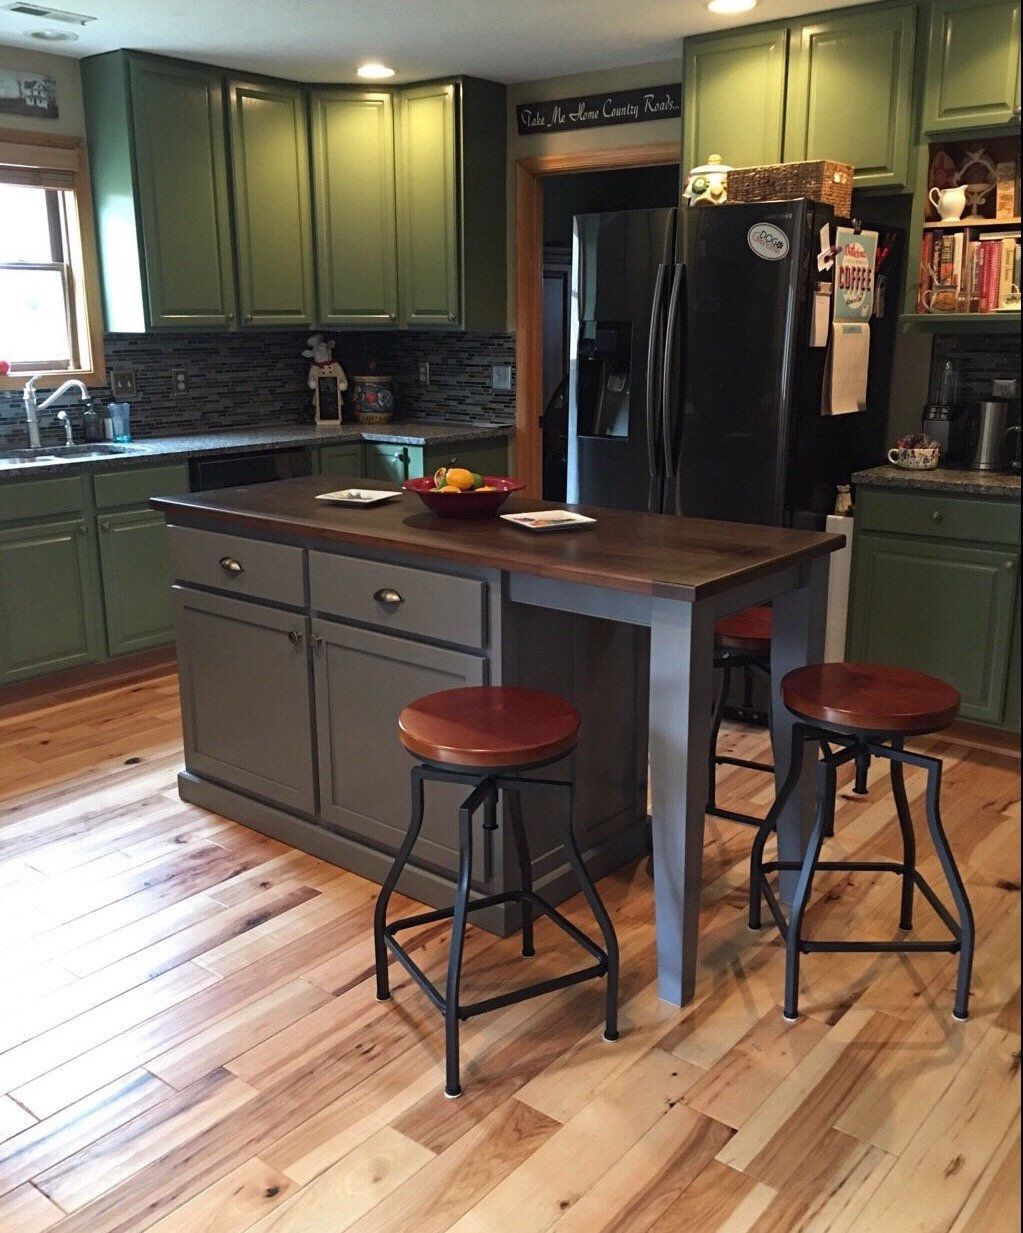 This Kitchen Island Cabinet Is 48 Wide By 24 Deep And